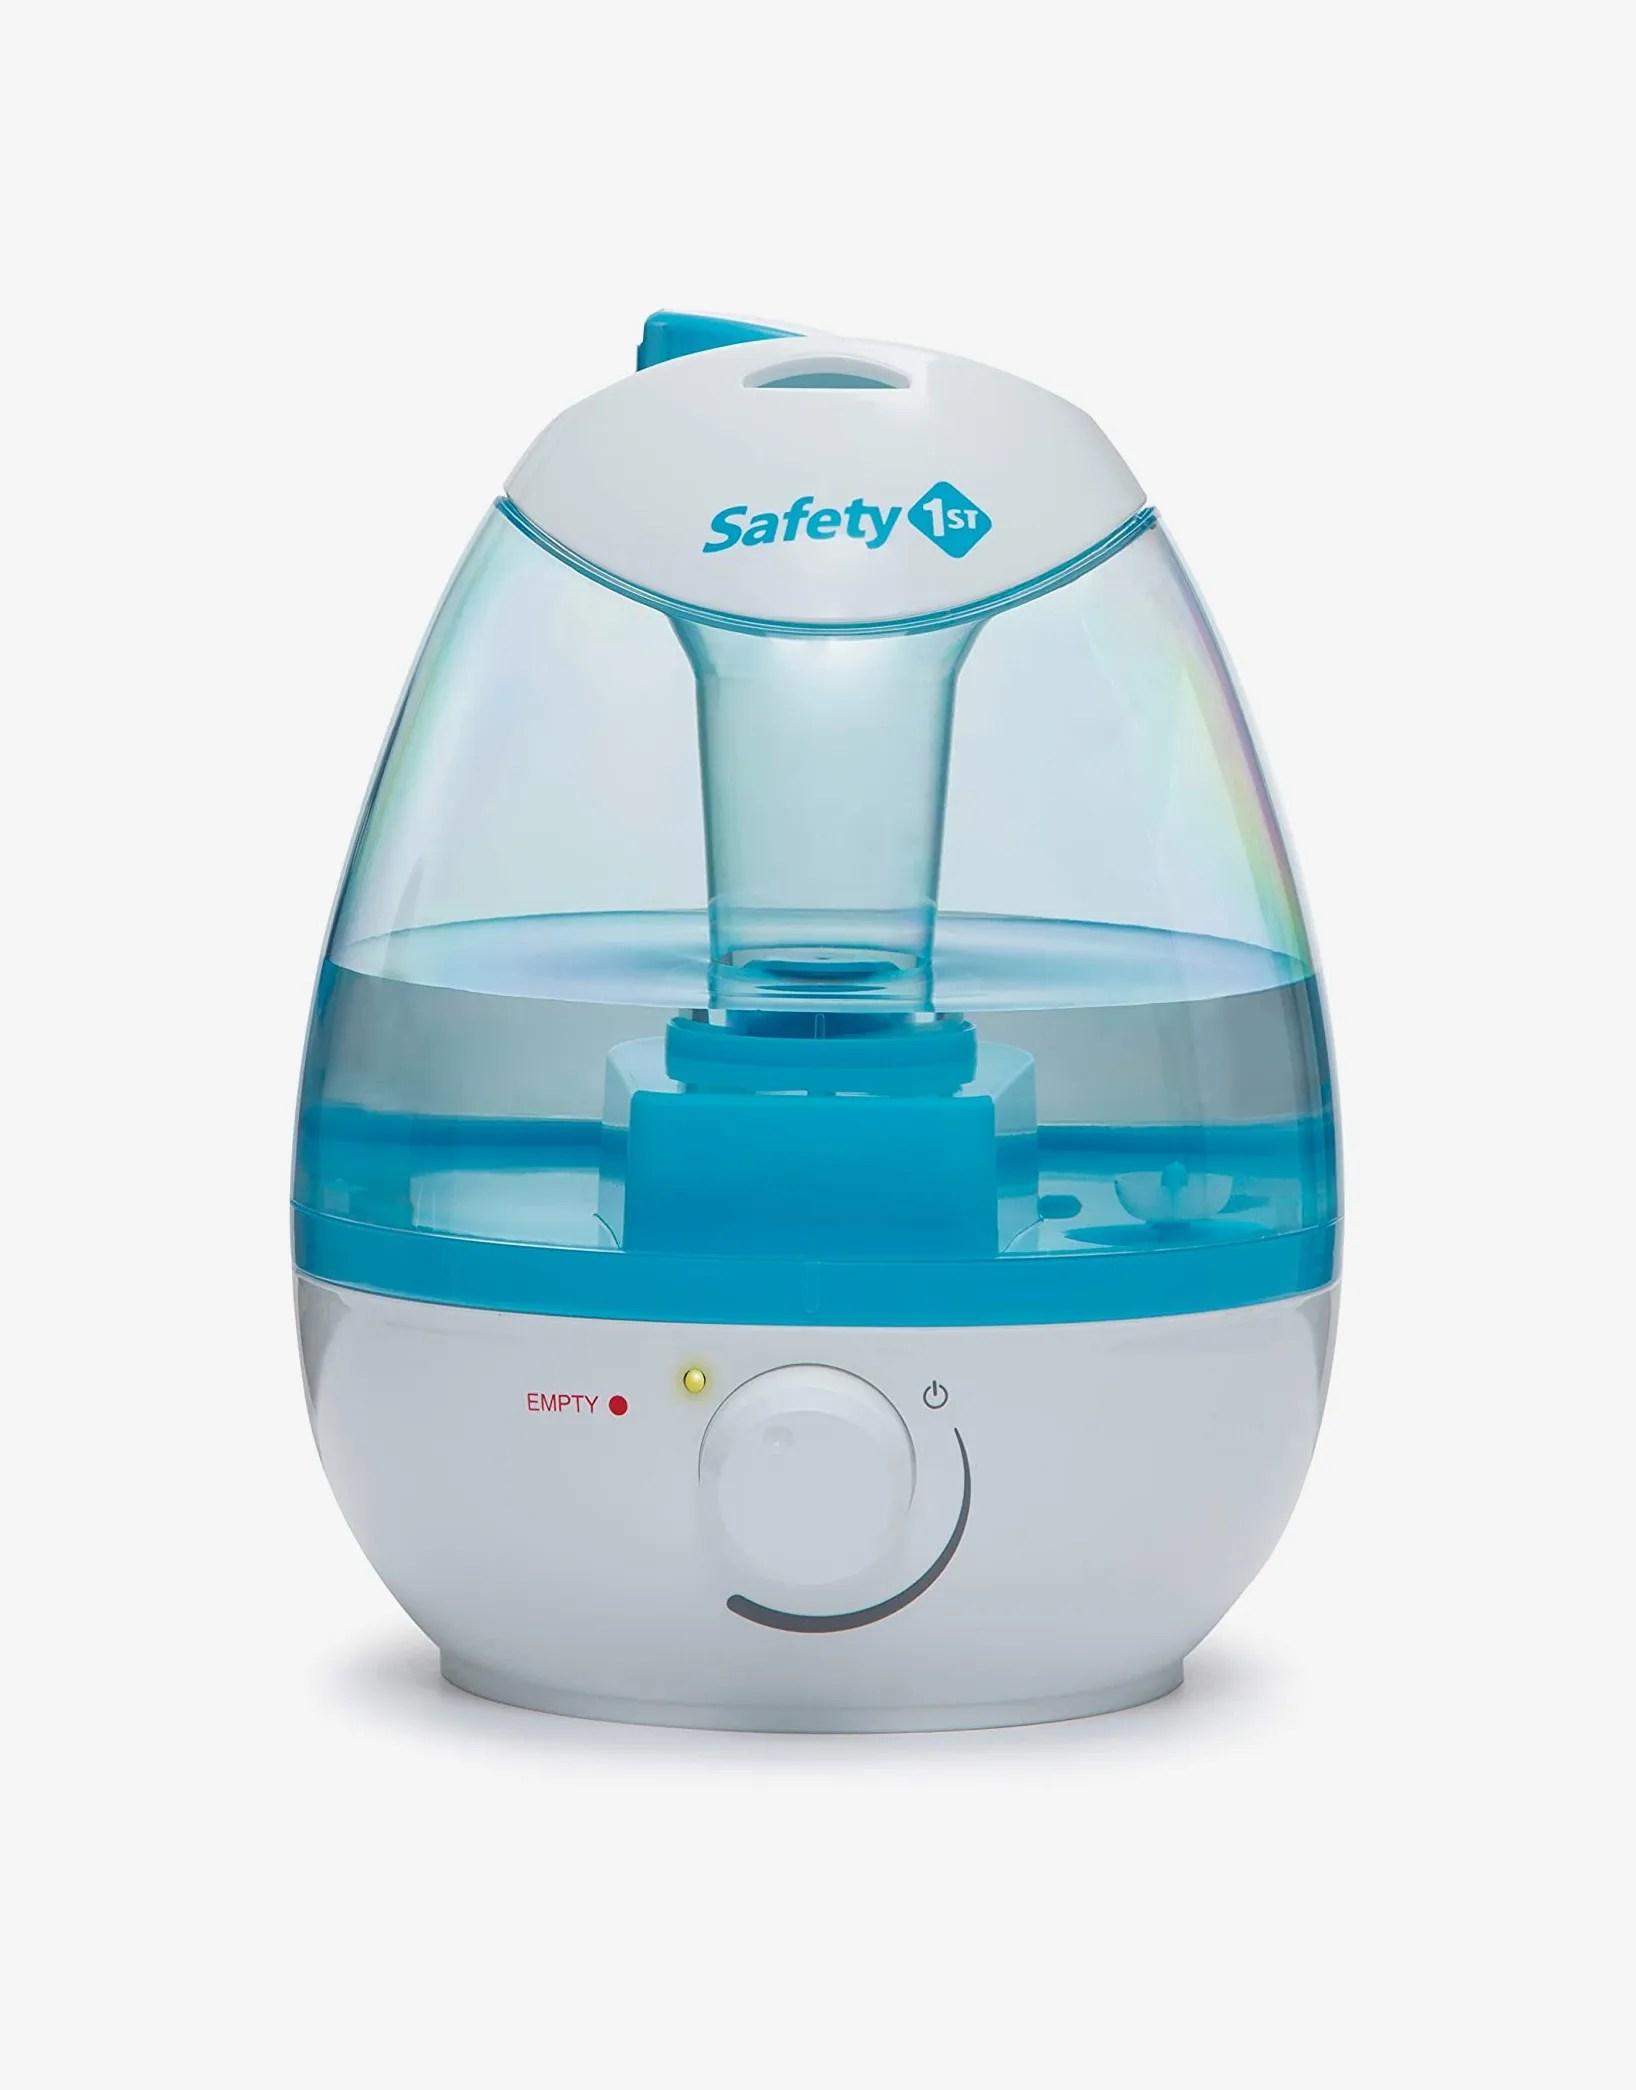 Hgtv shares how to add moisture to the air without the expense of a humidifier. 12 Best Humidifiers 2021 The Strategist